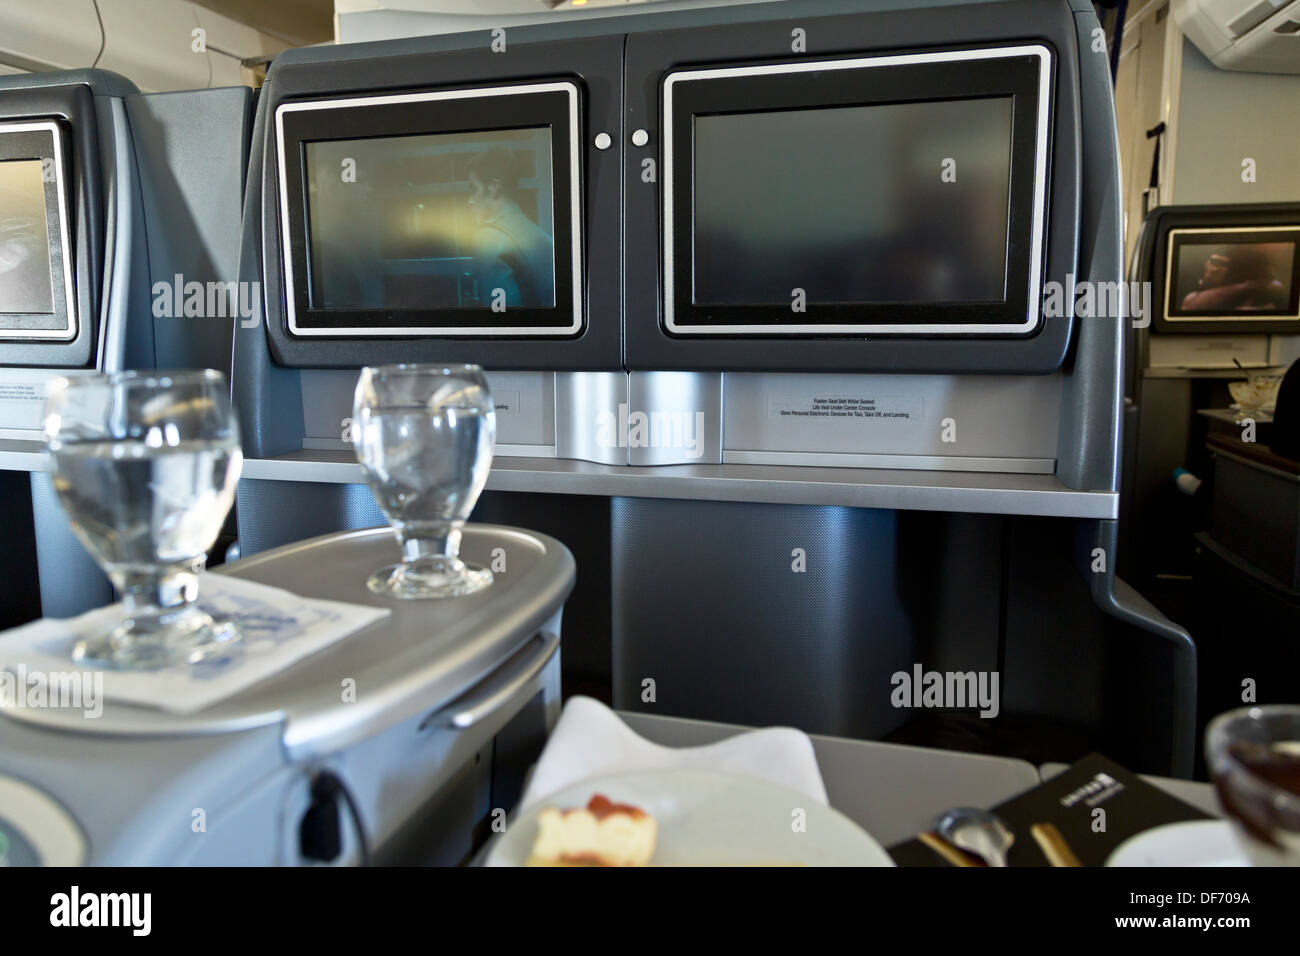 Car interior entertainment - Stock Photo United Airlines Business Class Interior Plane Seats Entertainment Units Drinks Glasses